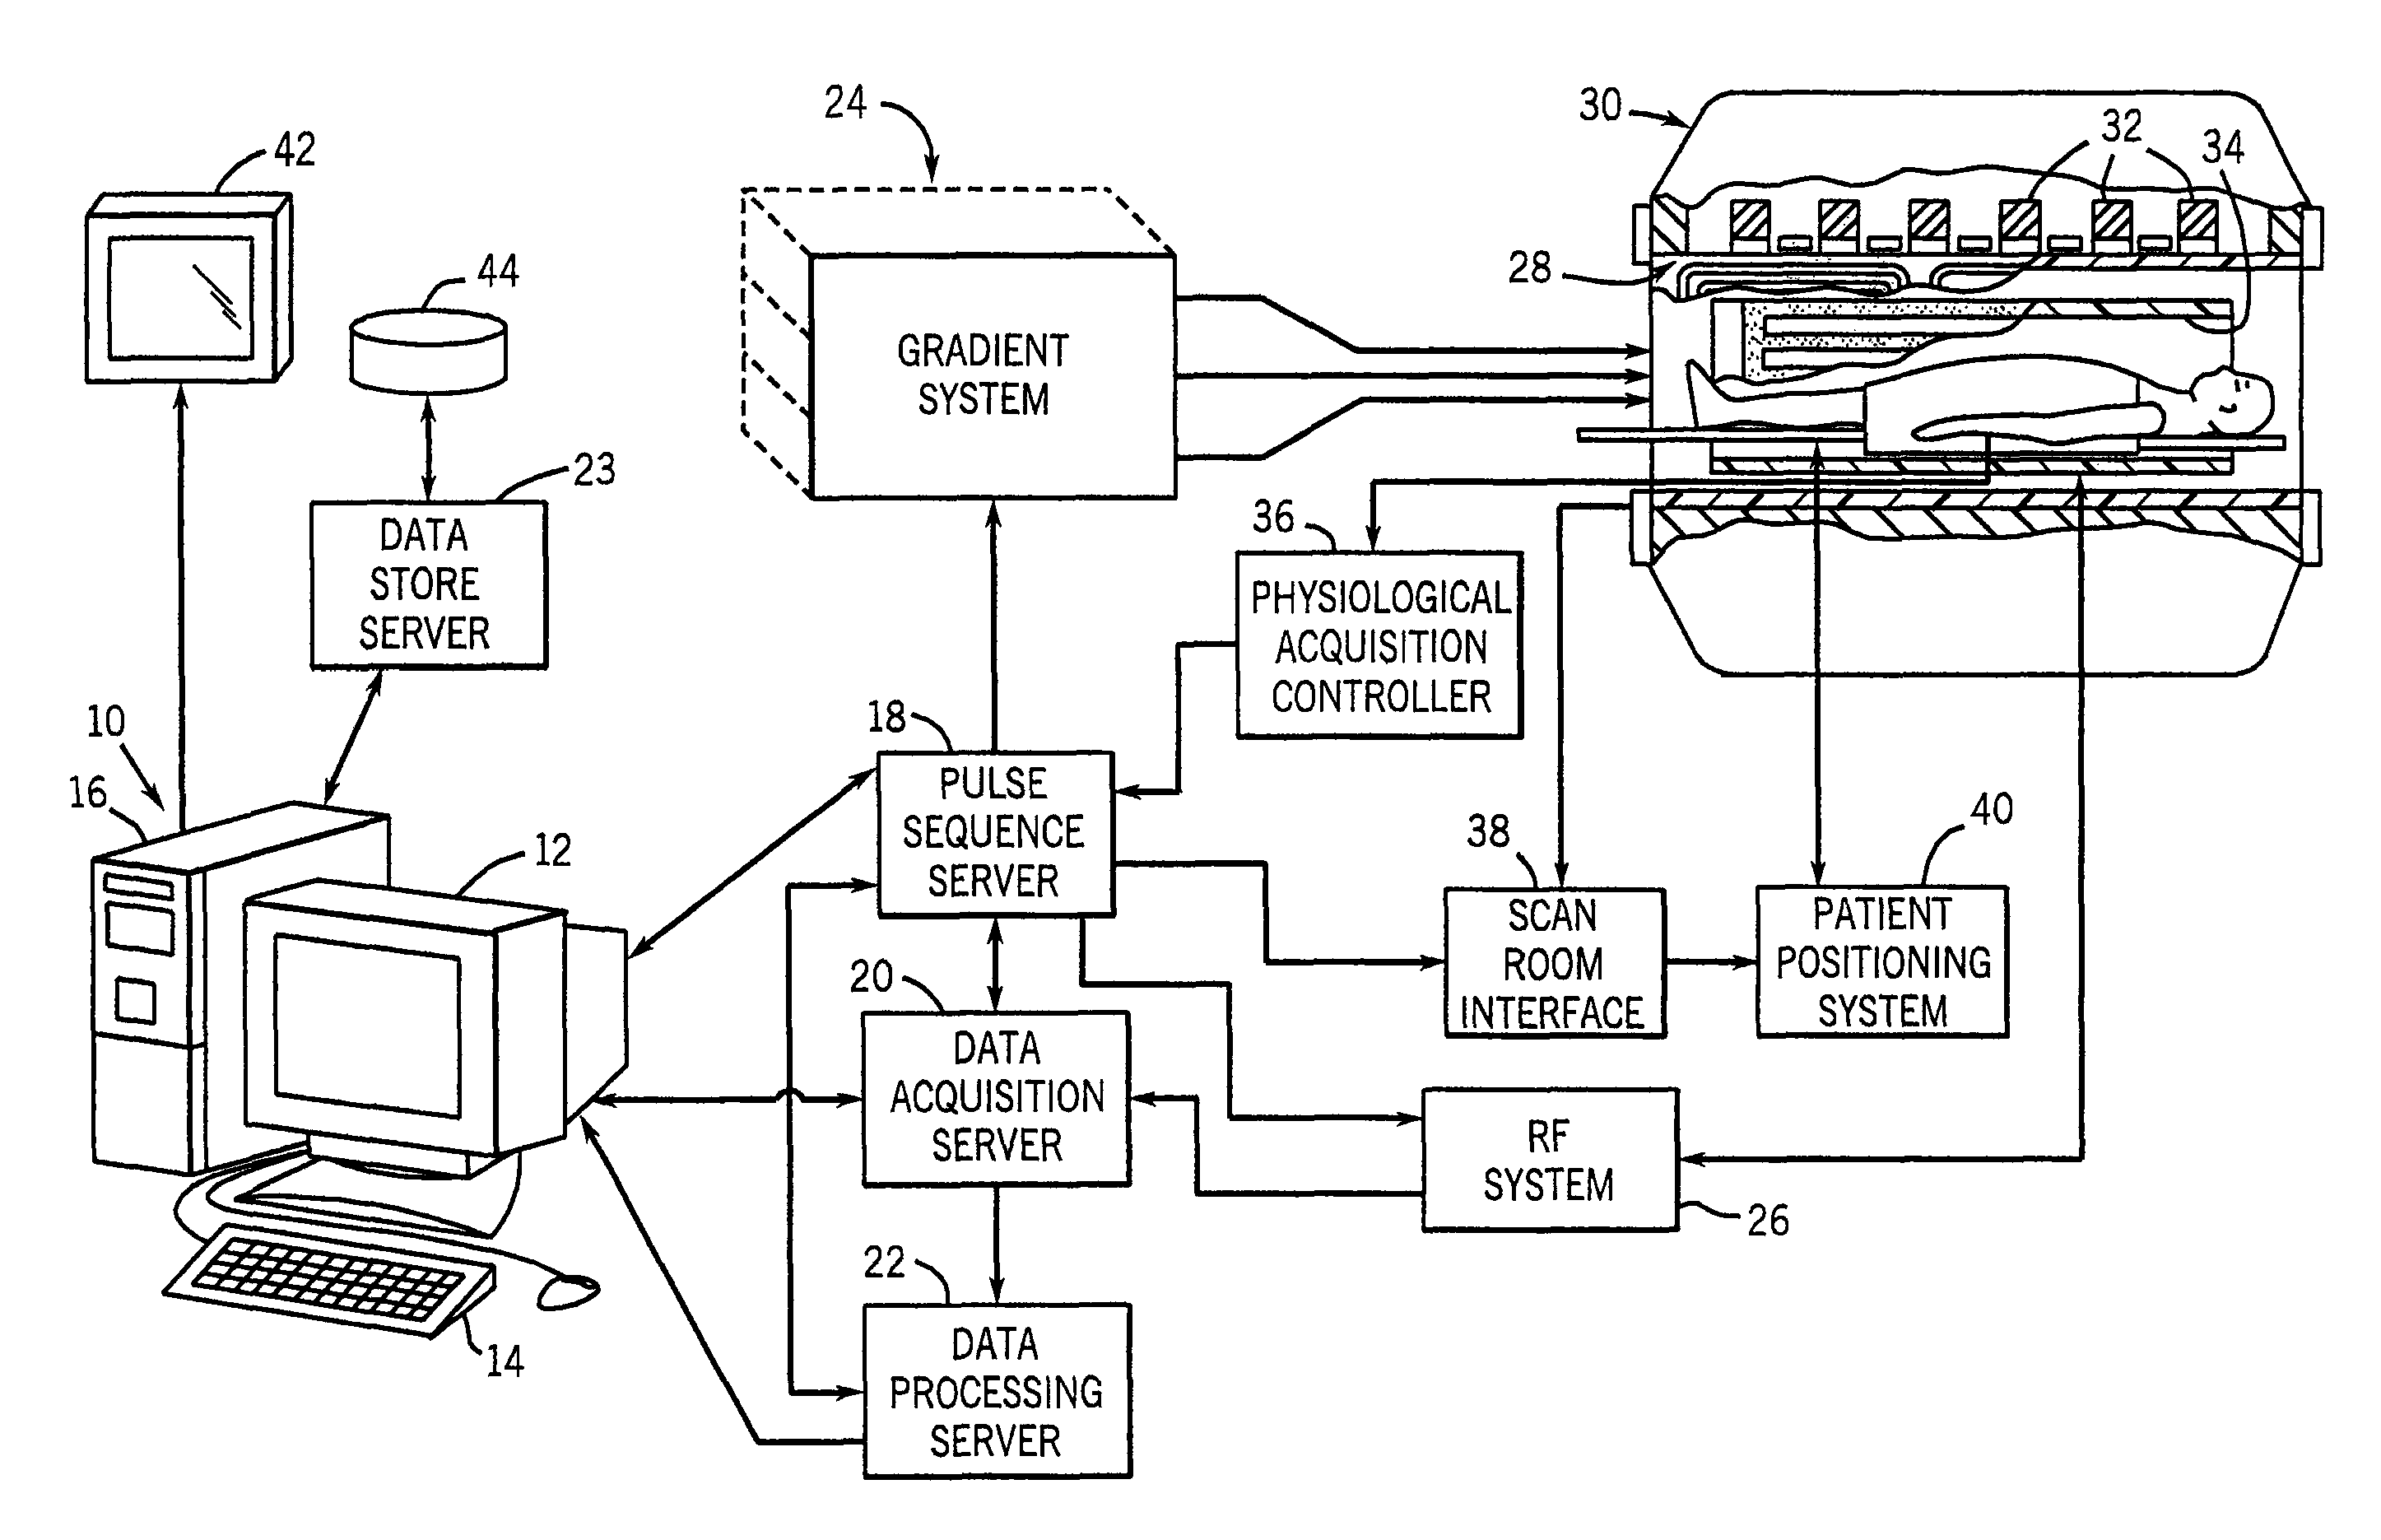 piping schematic software